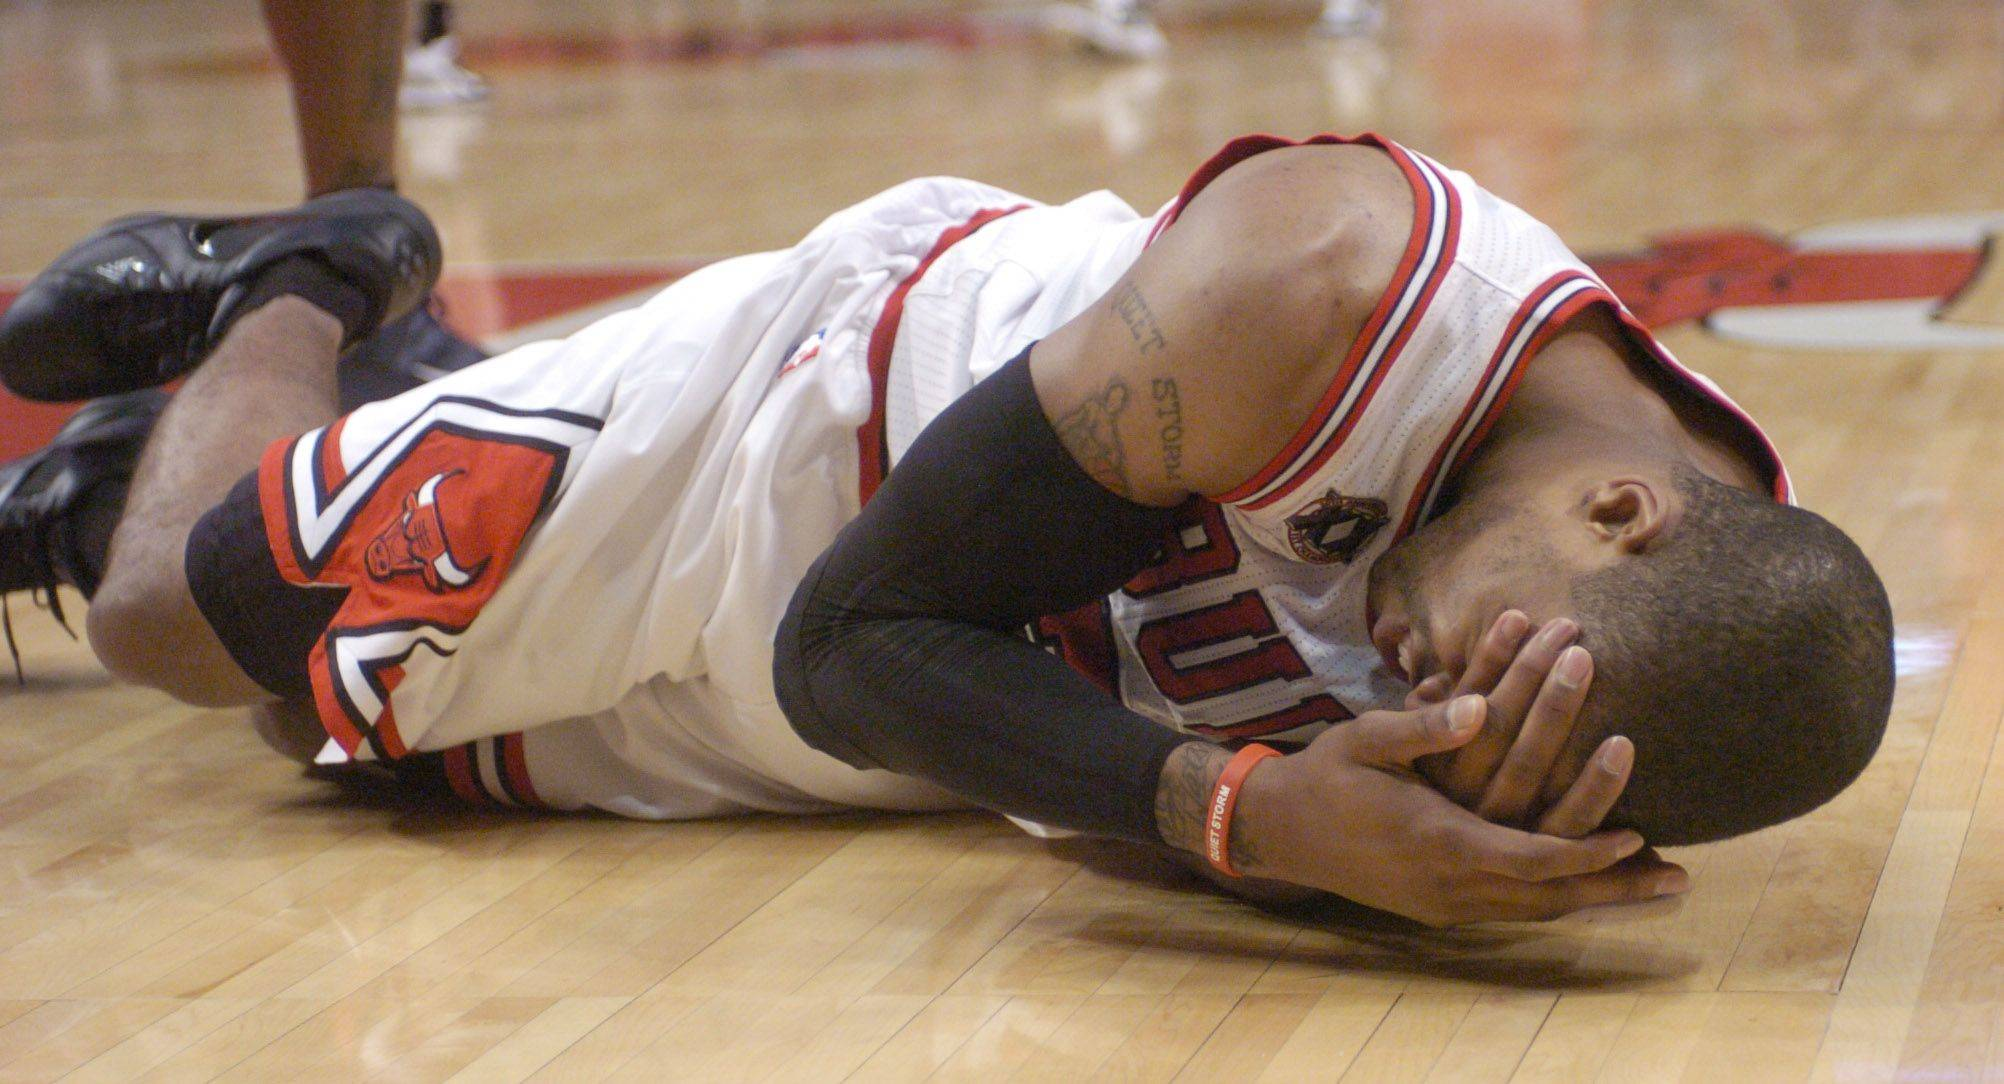 The Bulls' C.J. Watson lays on the floor after drawing contact under the basket Monday.